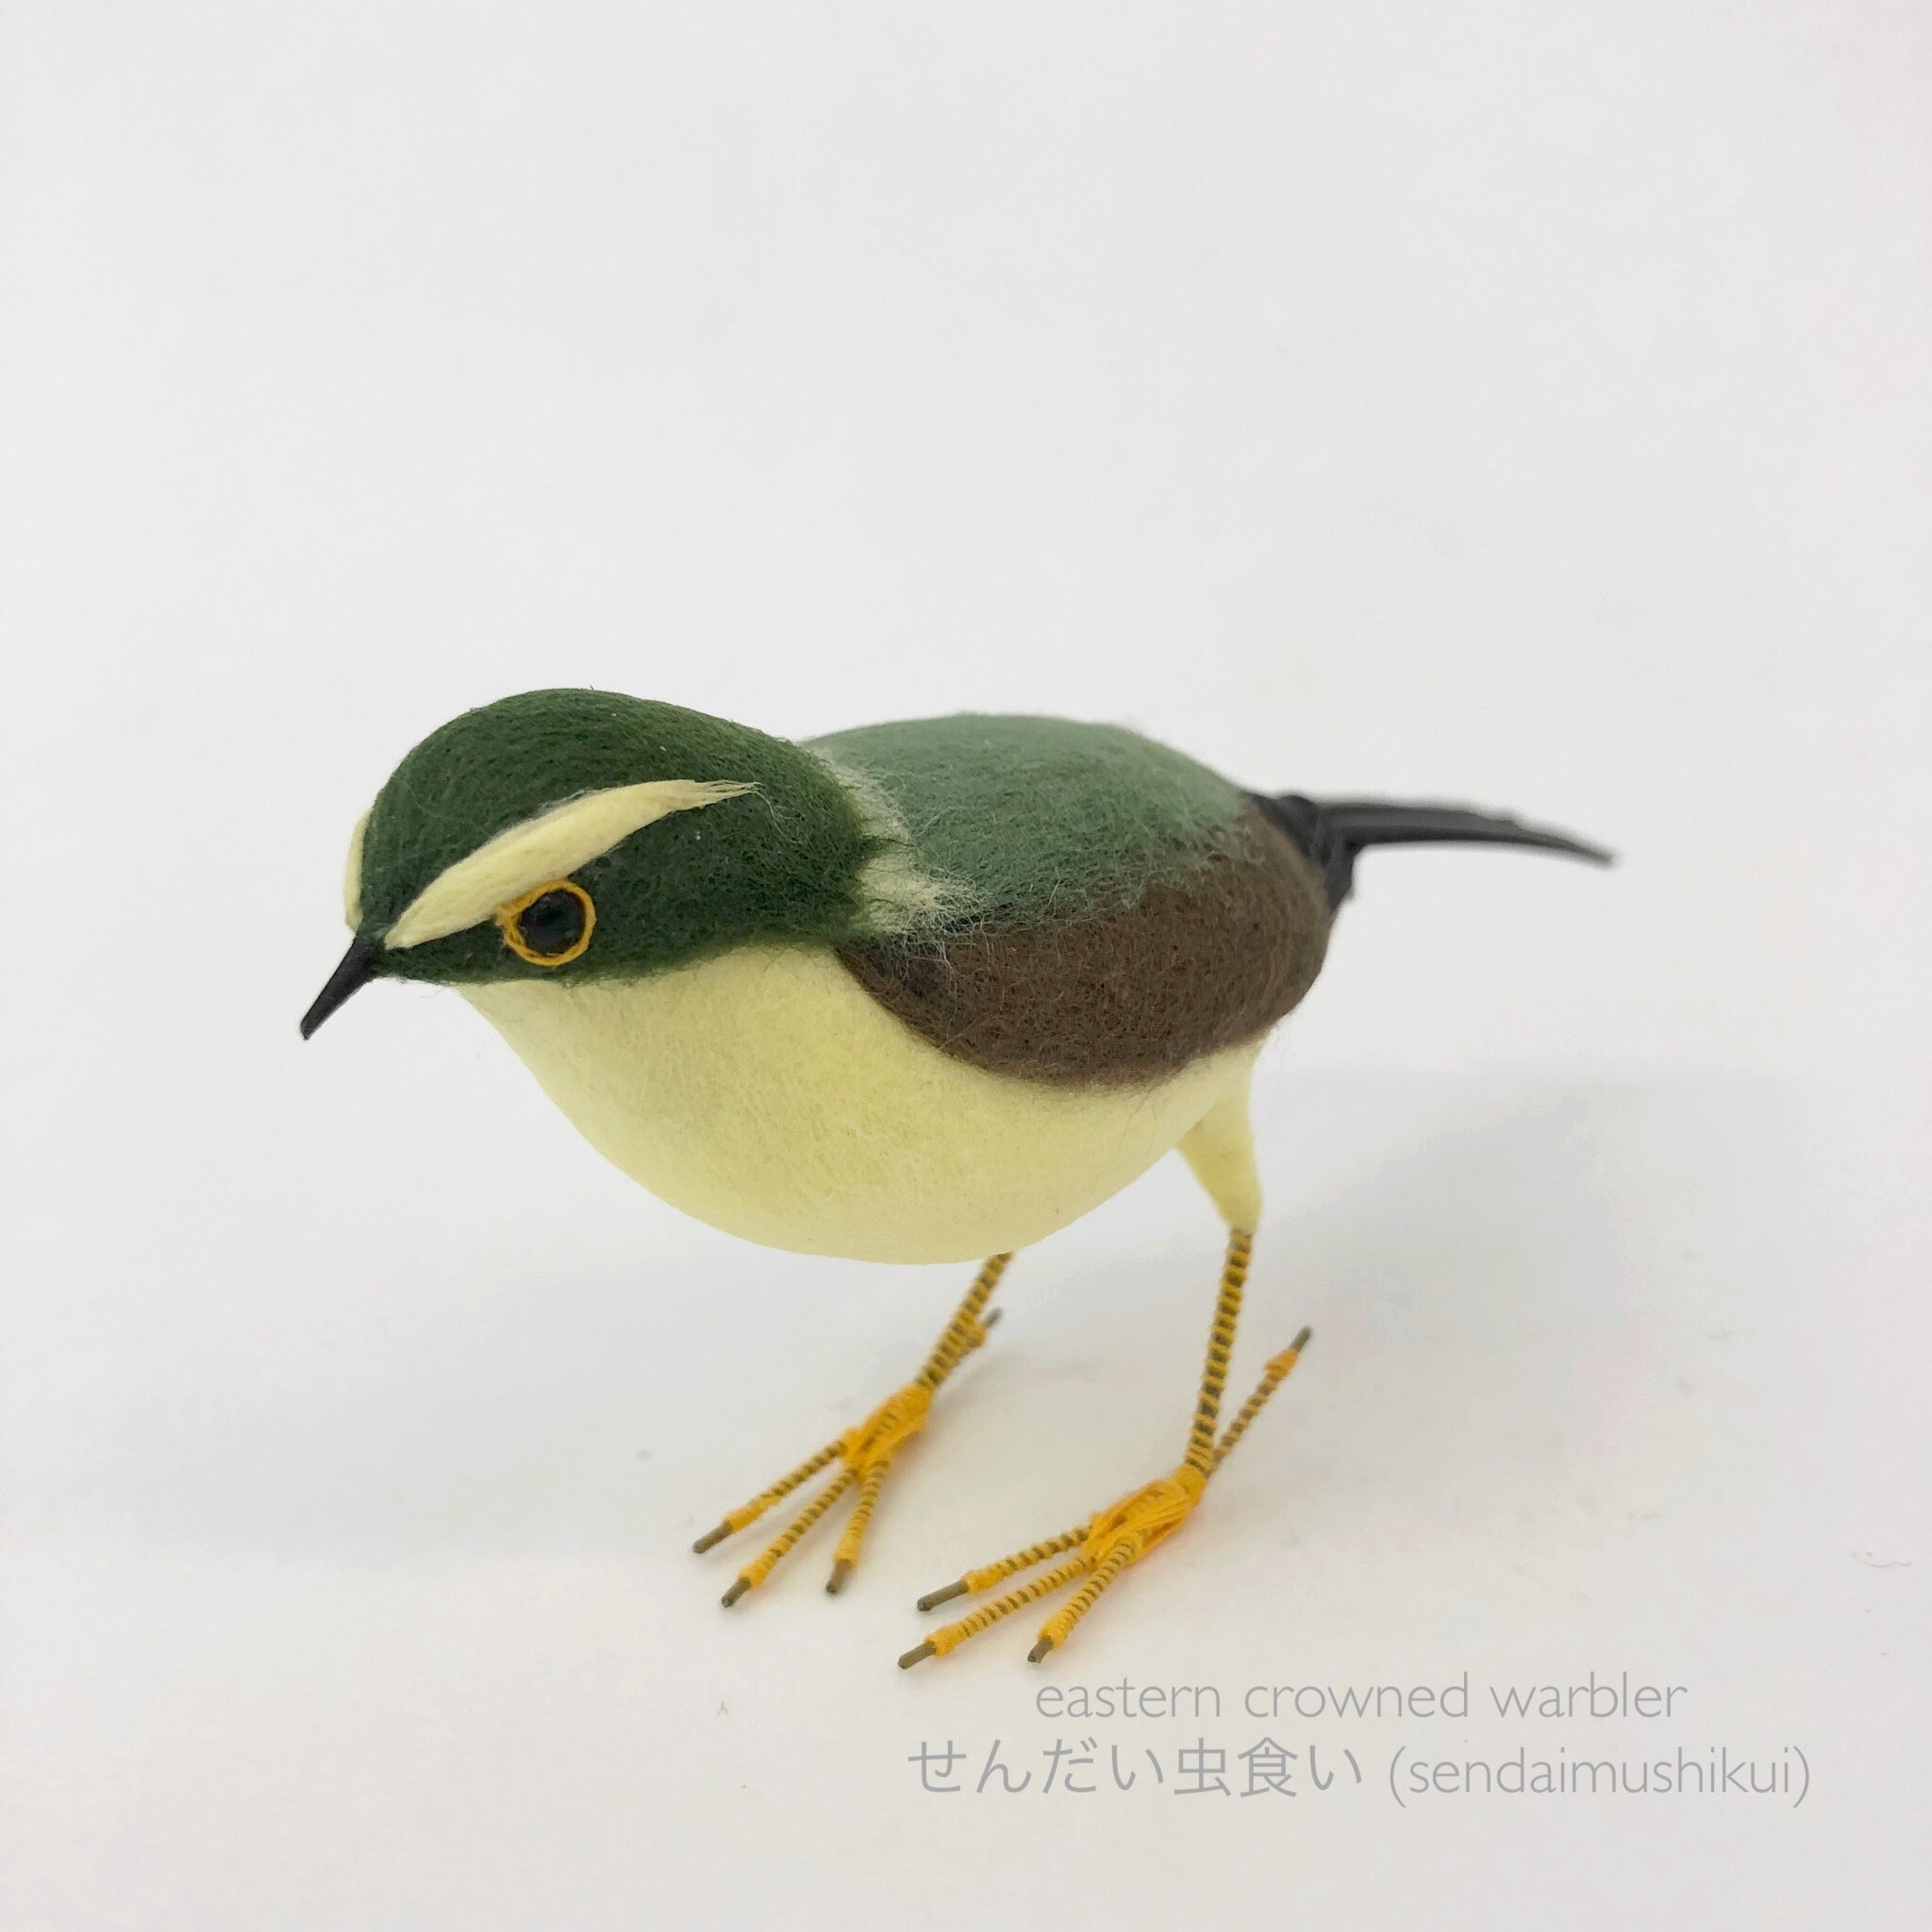 Wild Bird Ornament -Eastern crowned warblerー仙台虫喰い